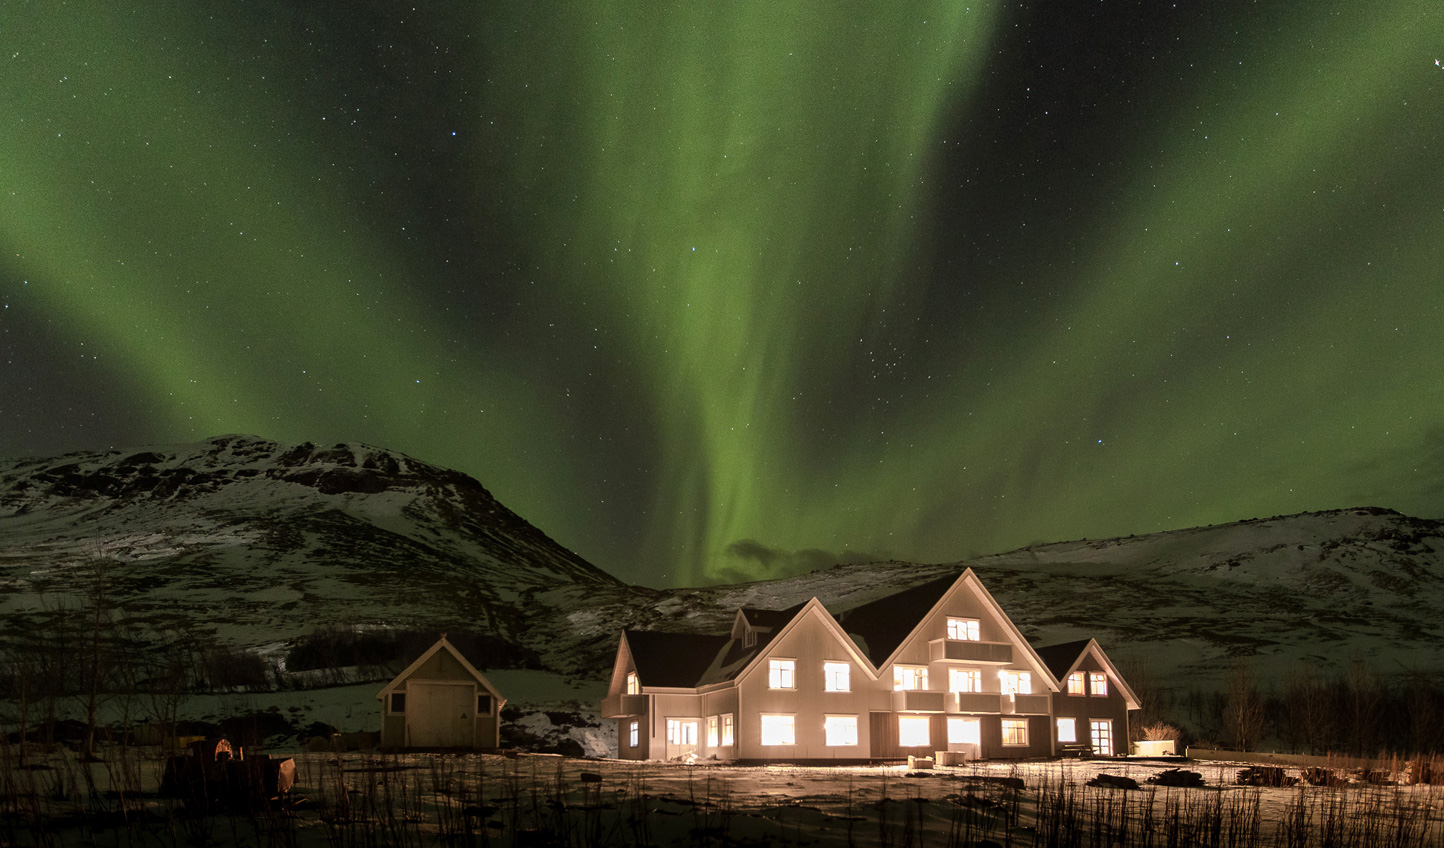 Rest up beneath the flicker of the Northern Lights at Skalakot